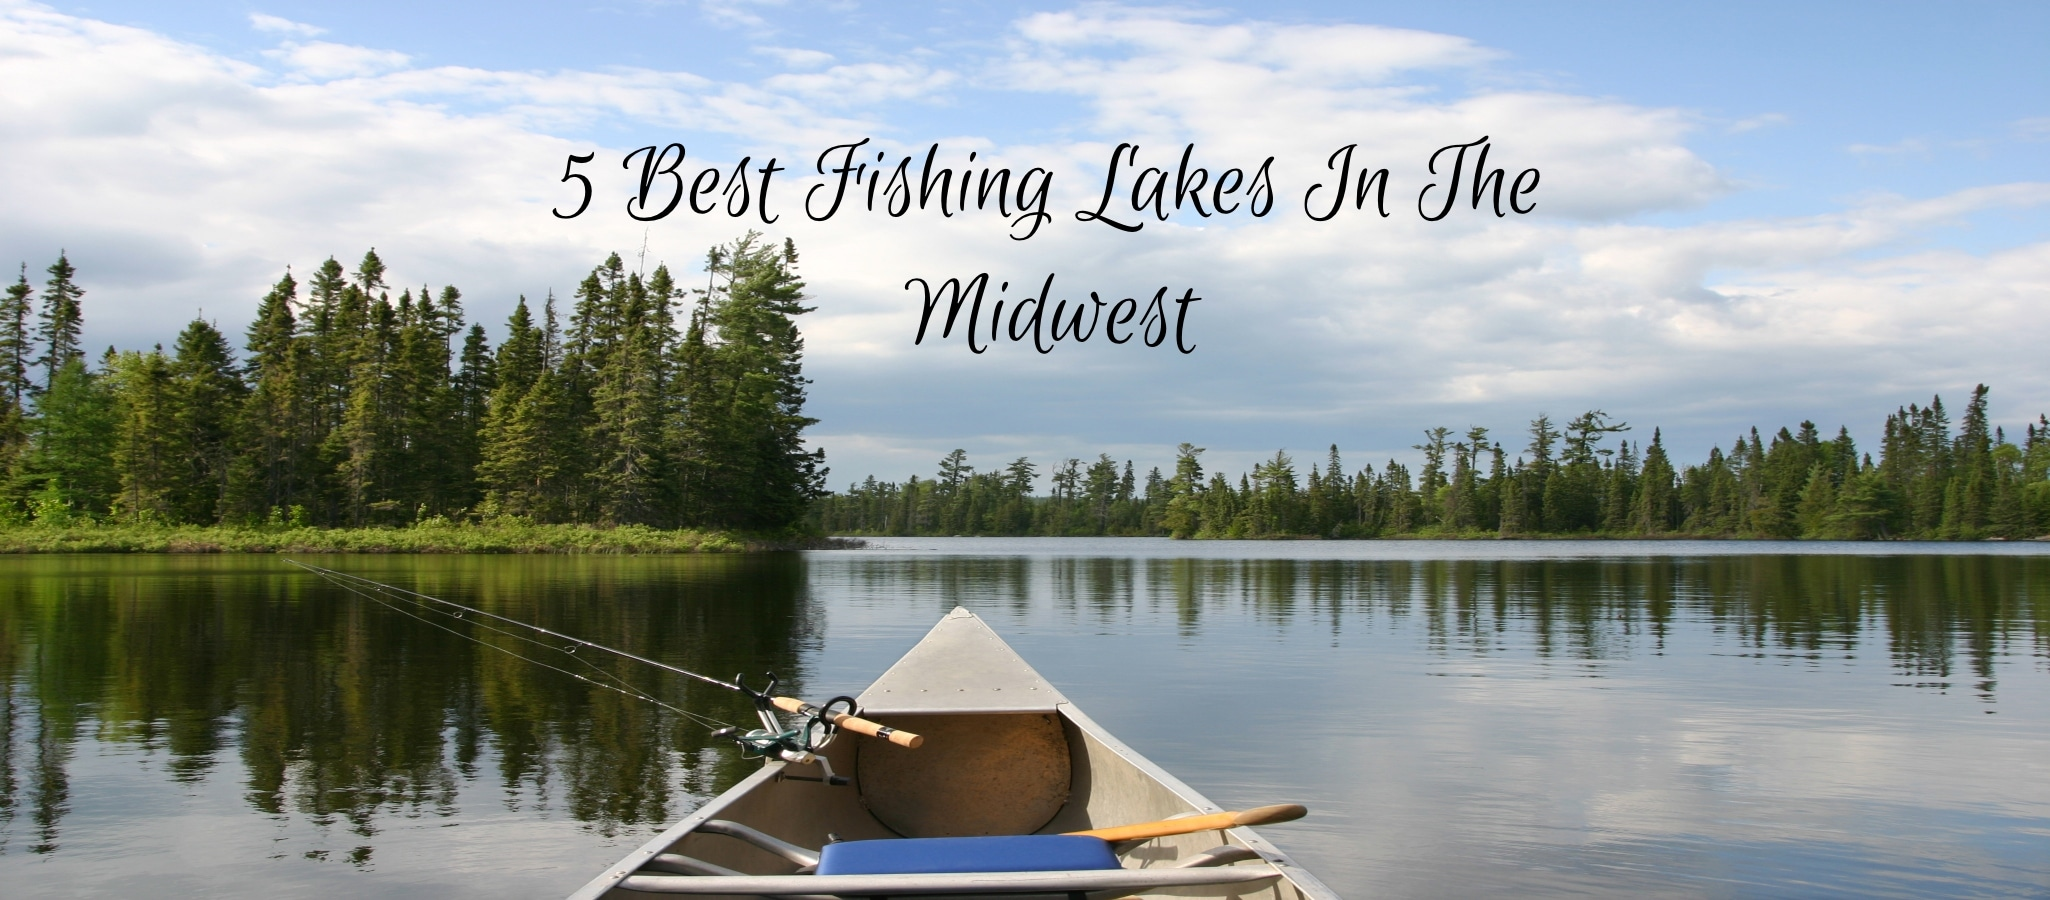 5 Best Fishing Lakes